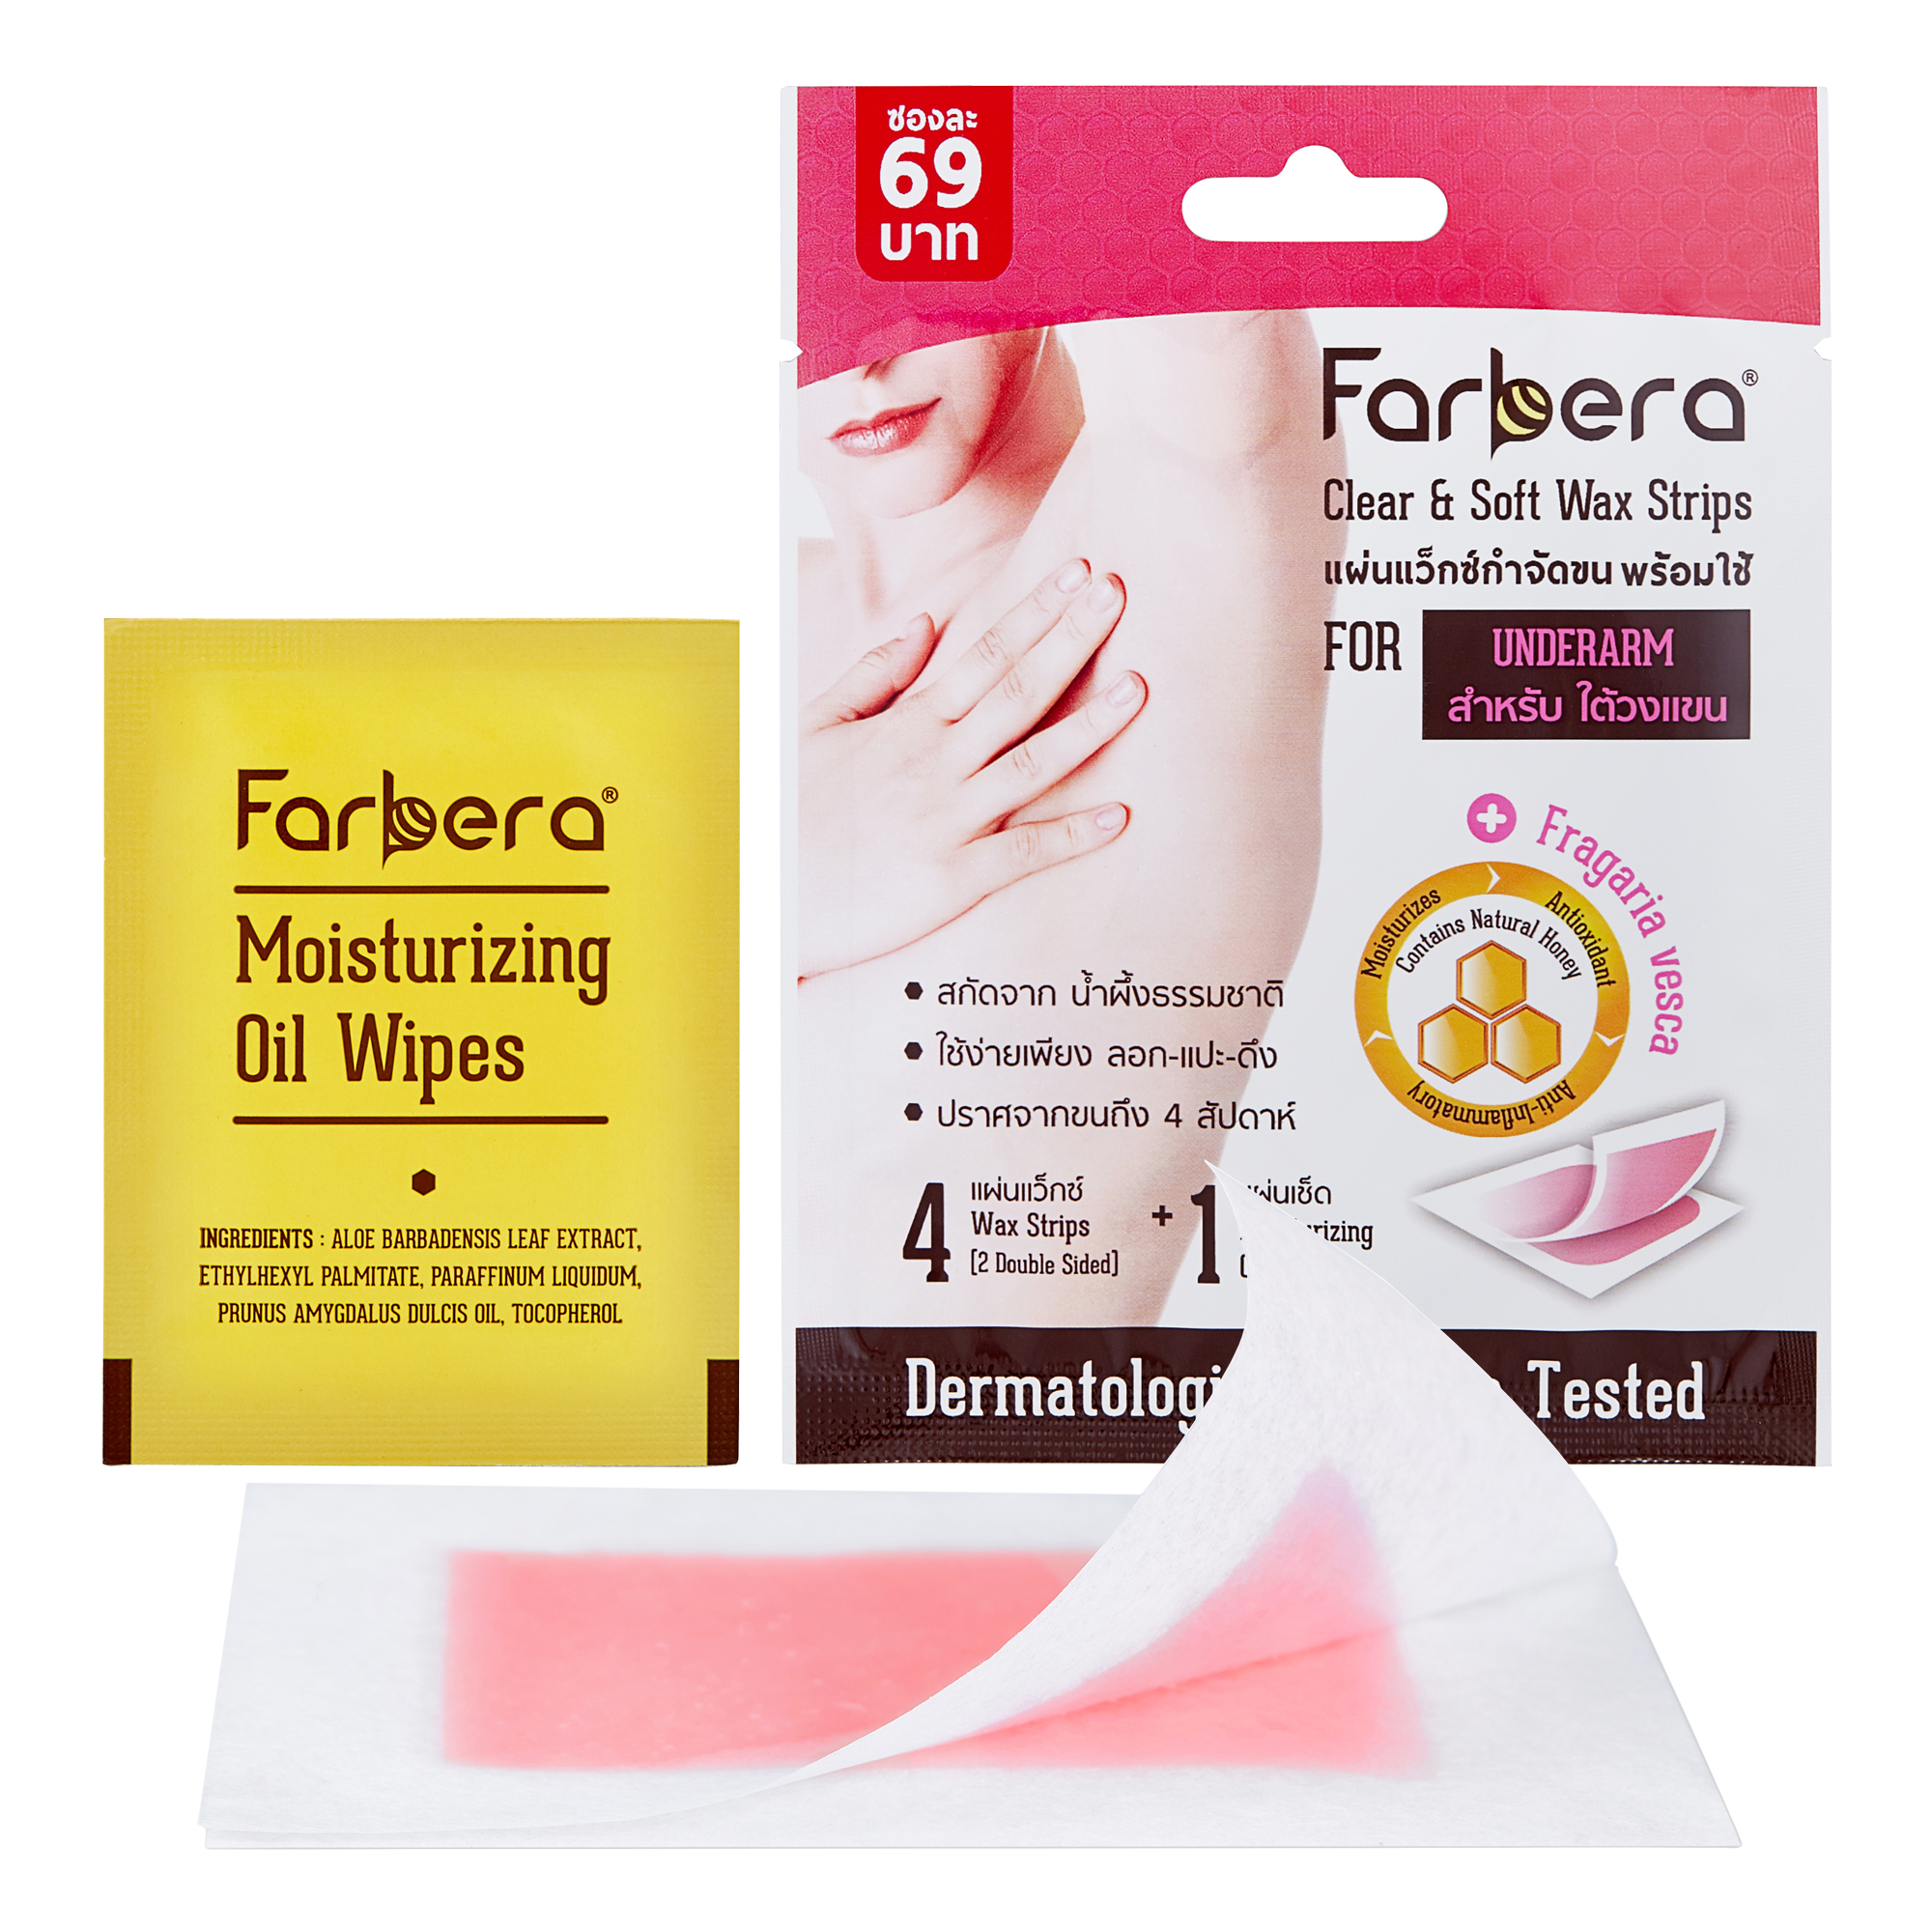 Farbera Clear & Soft Wax Strips (For underarm) 4 แผ่น